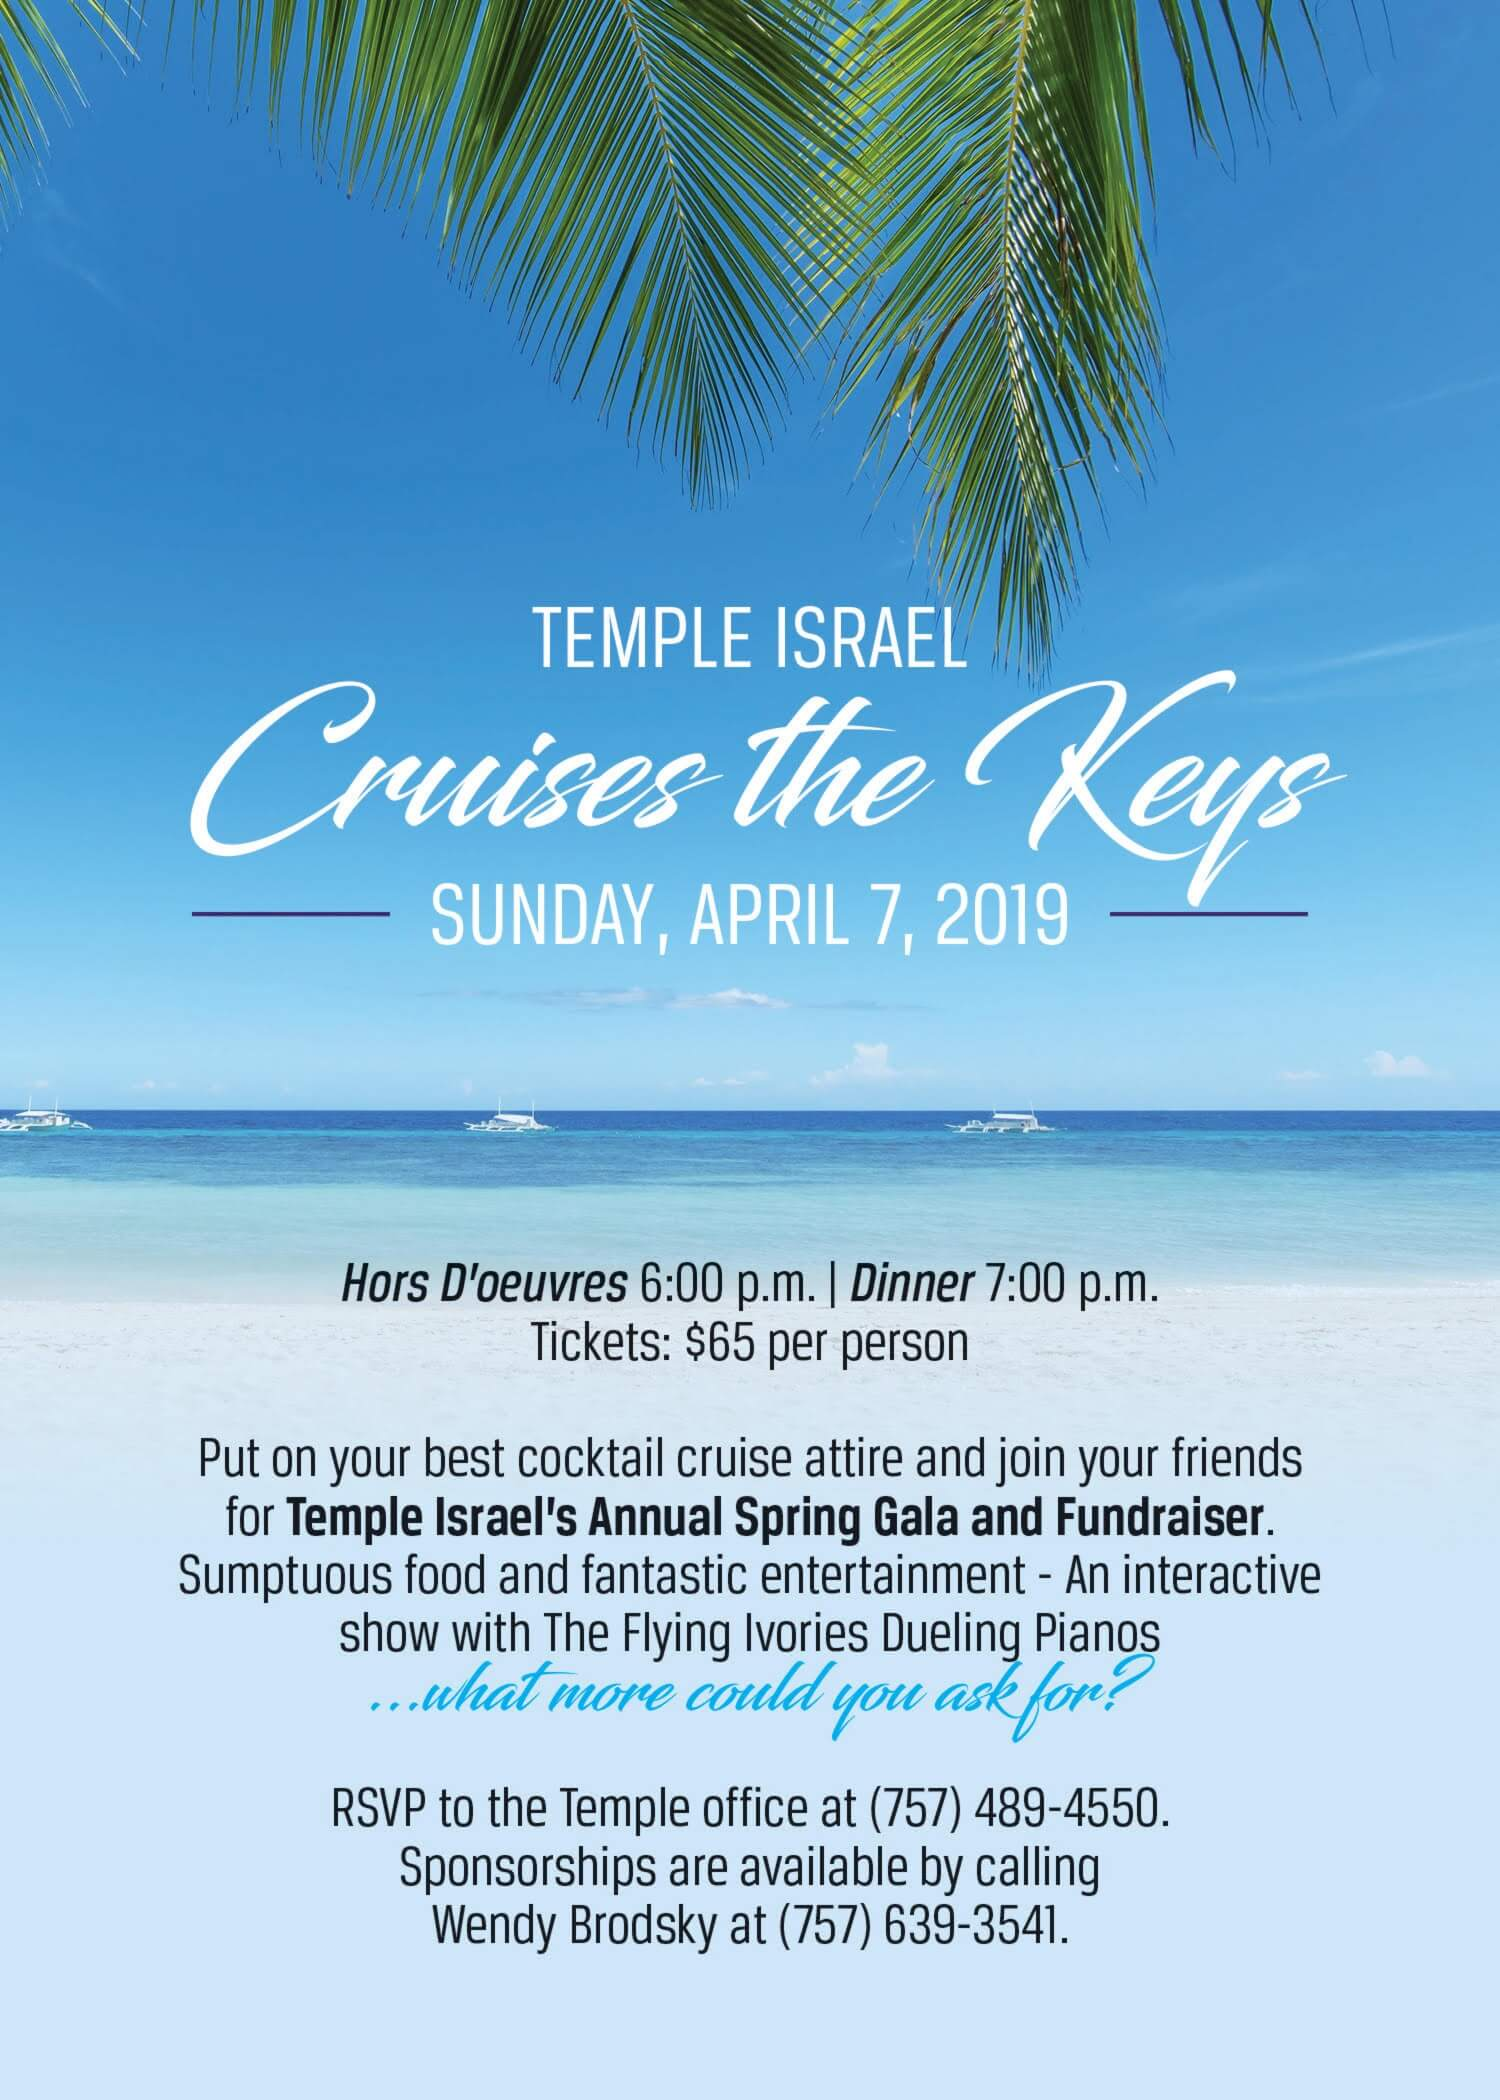 temple_israel_cruises_the_keys_fundraiser_2019_invitation